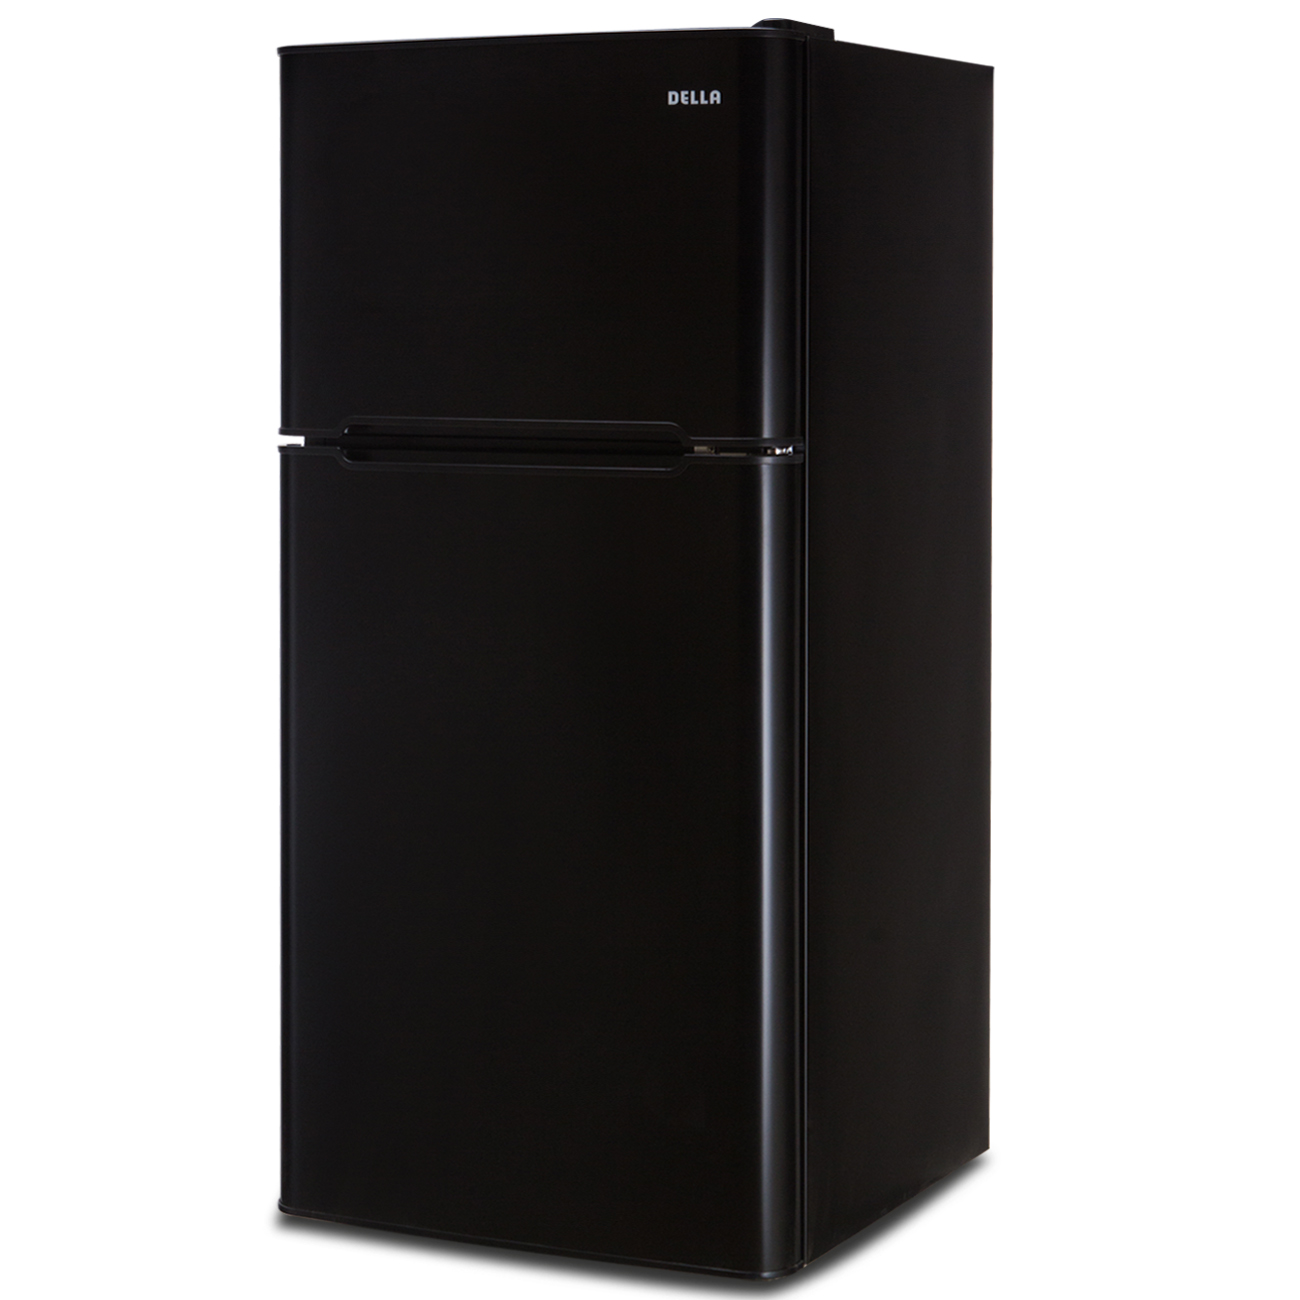 4 5 cu ft cubic feet compact double door refrigerator. Black Bedroom Furniture Sets. Home Design Ideas